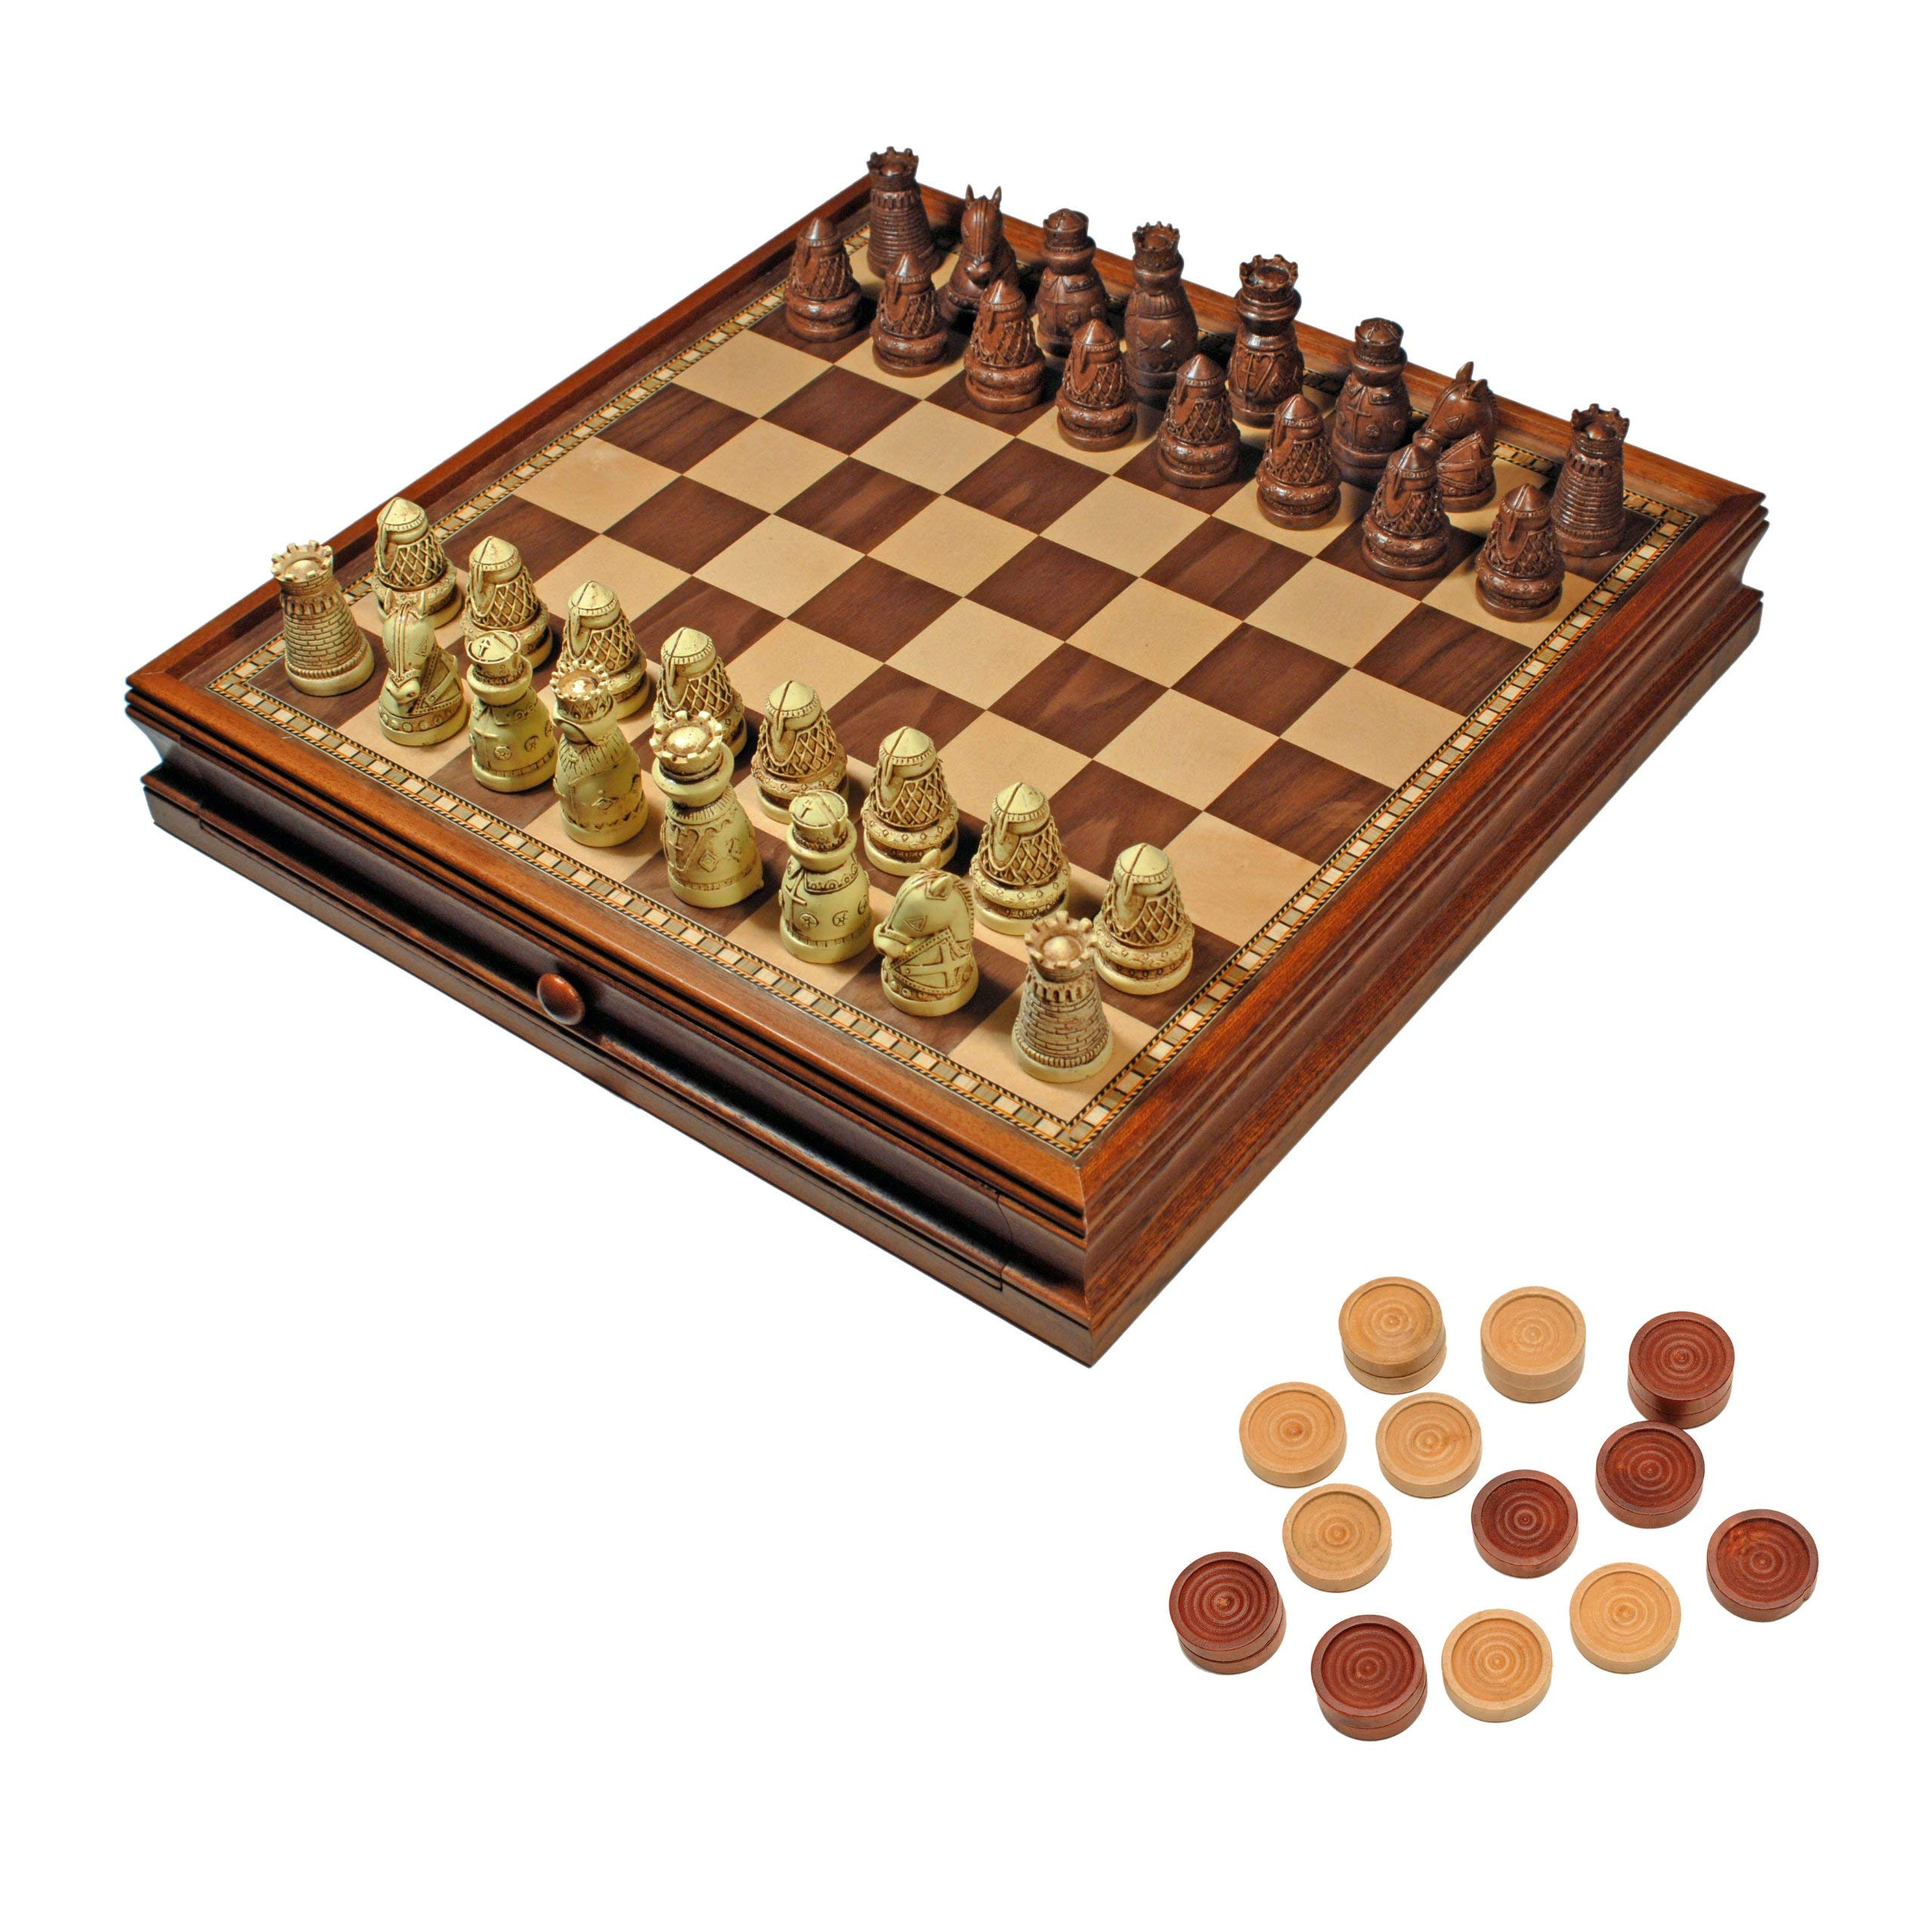 WE Games Medieval Chess & Checkers Game Set - Brown & Ivory Chessmen & Wood Board with Storage Drawers 15 in. (Certified Refurbished)